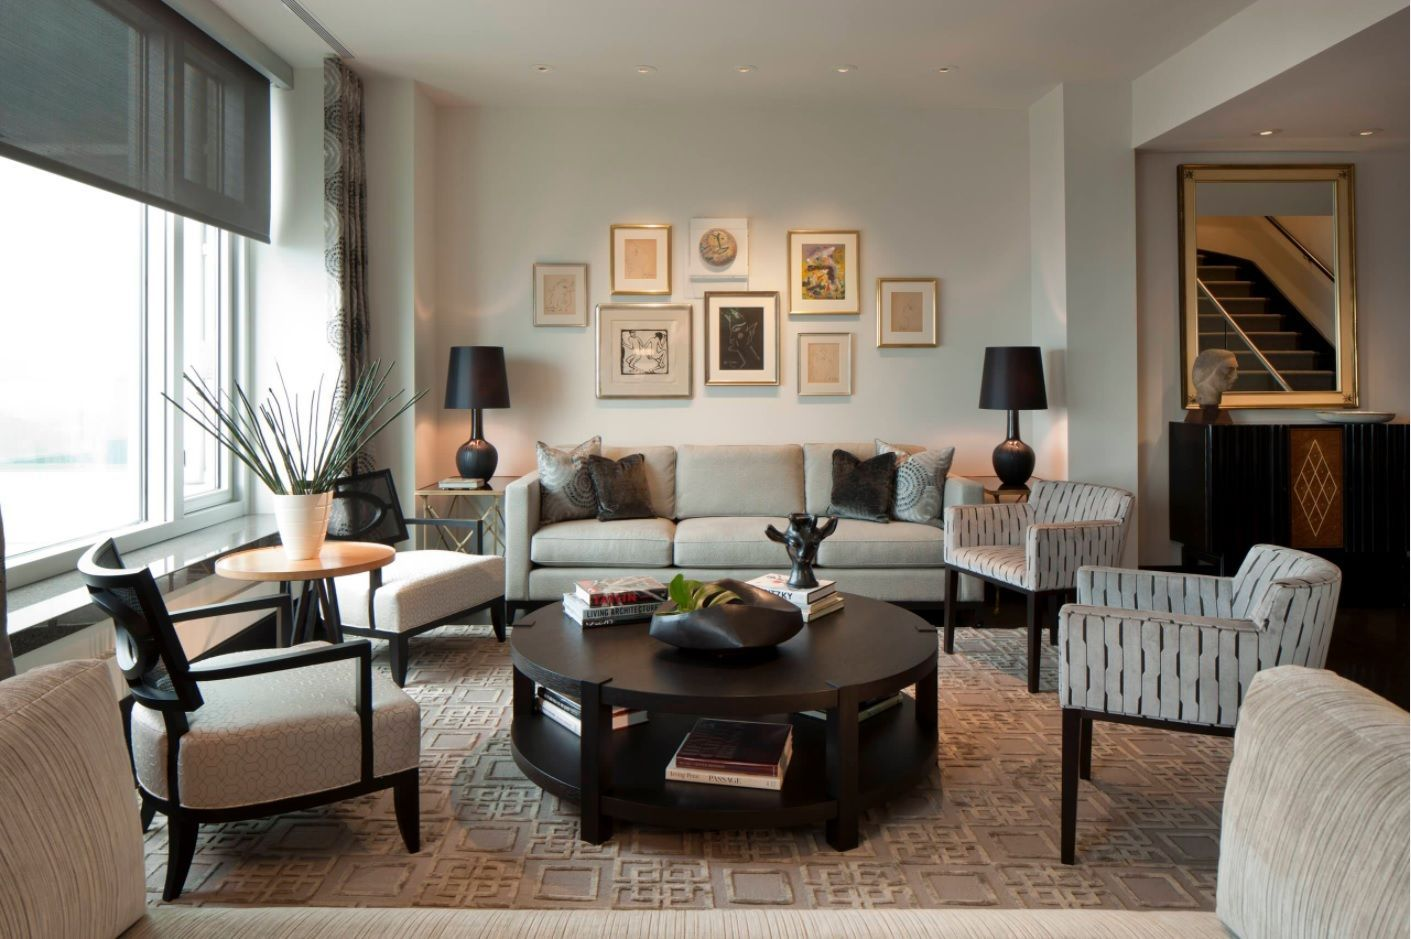 Living Room Layout Design & Decoration Ideas. Round dark coffee table in the room decorated with pictures